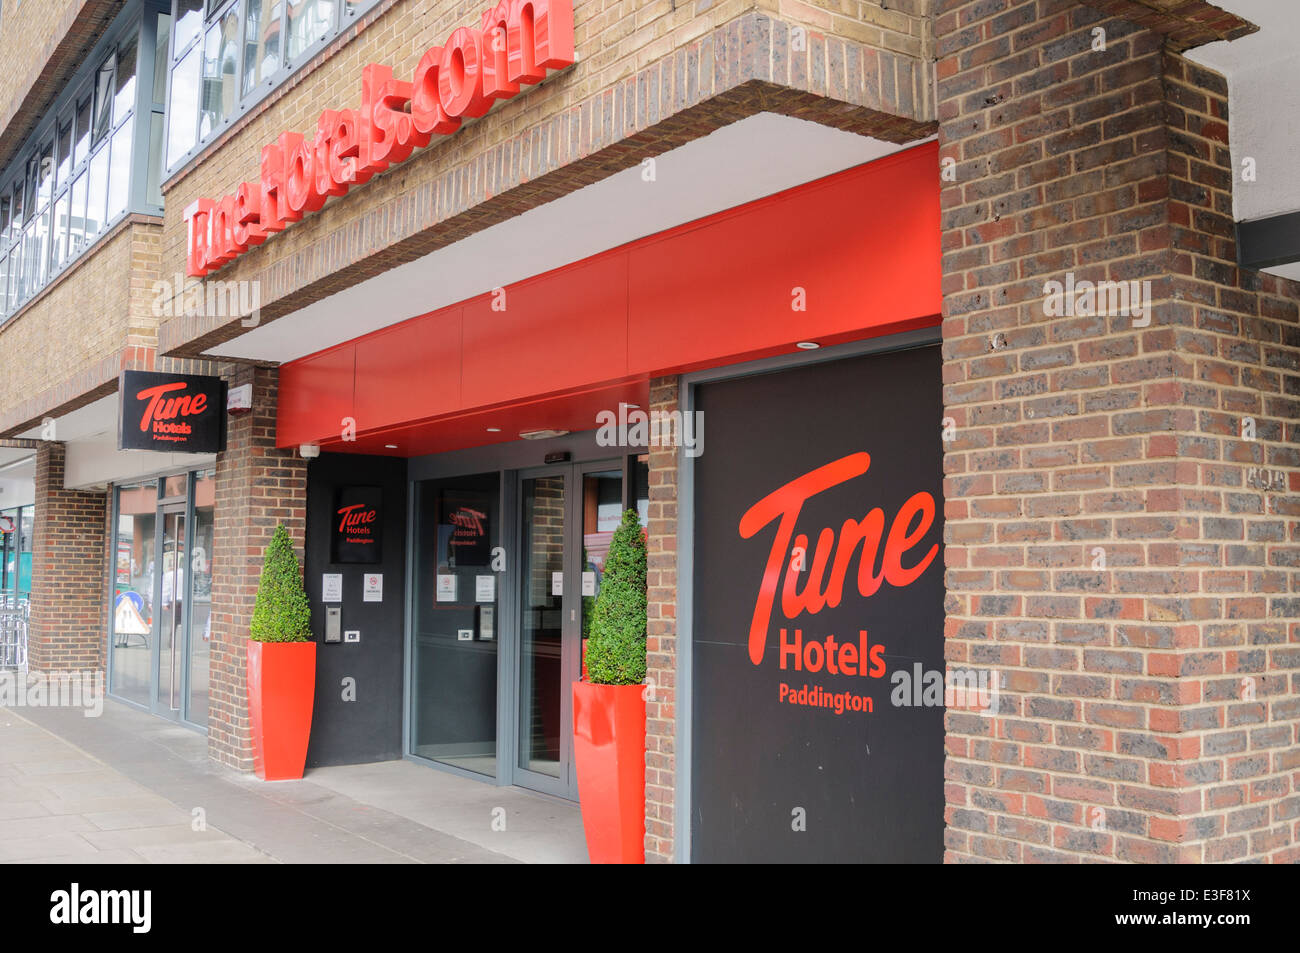 Tune Hotels Stock Photos & Tune Hotels Stock Images - Alamy